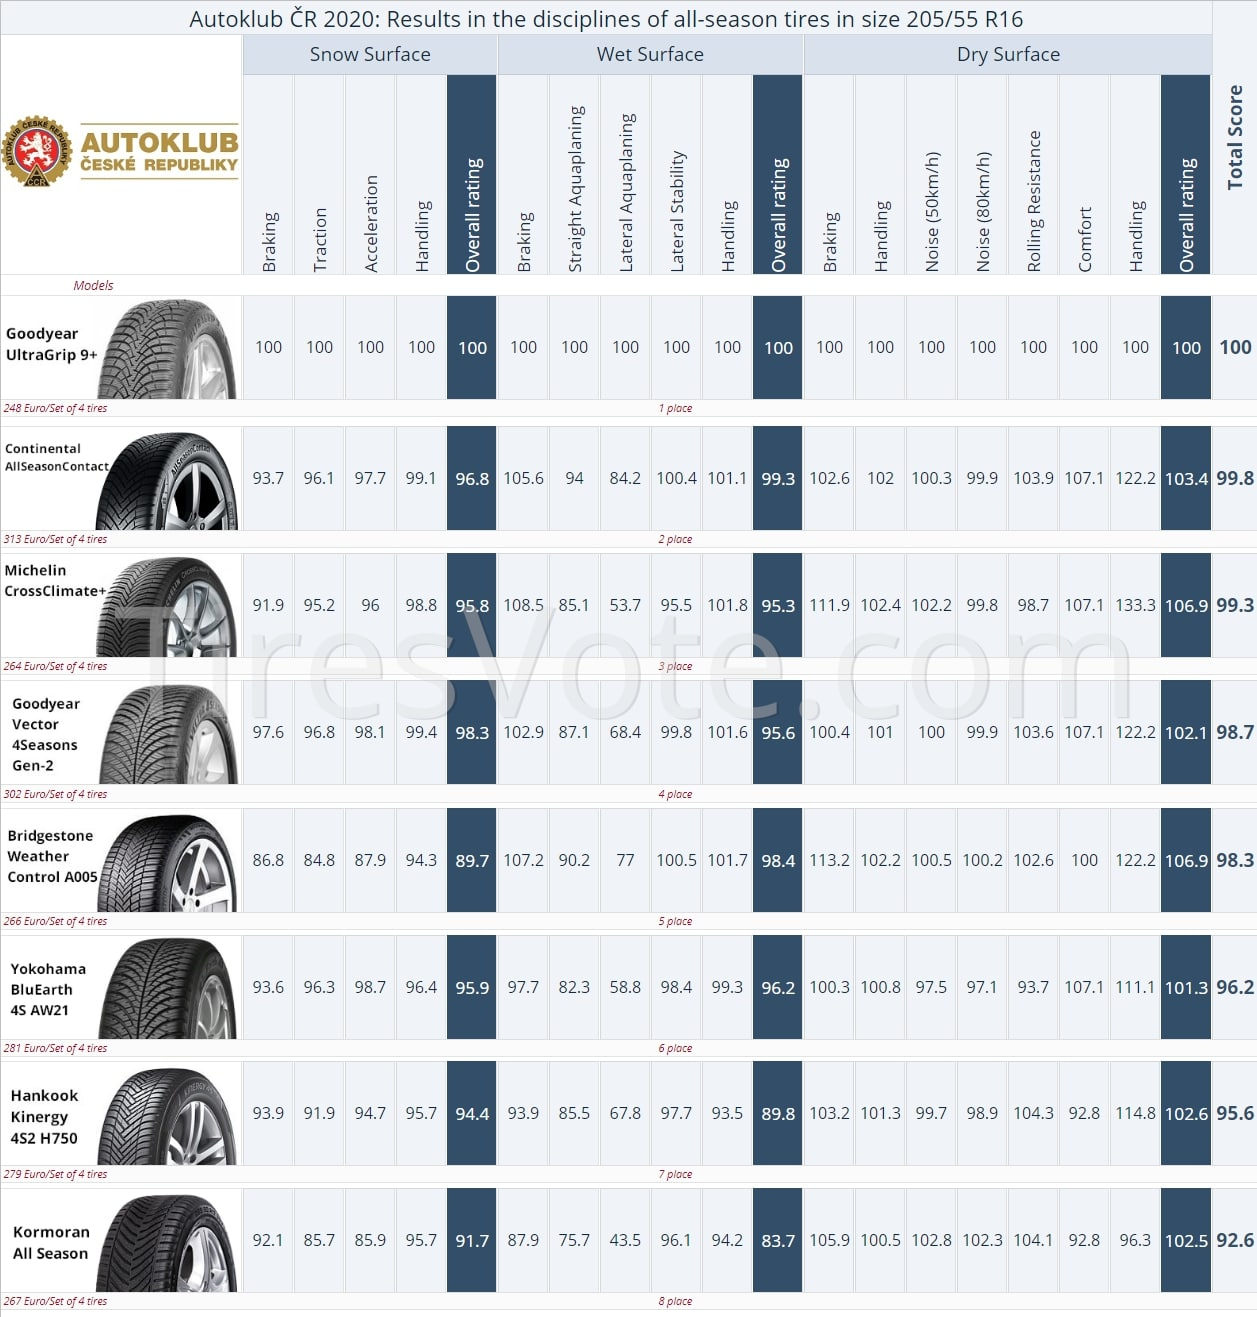 Autoklub ČR 2020: Results in the disciplines of all-season tires in size 205/55 R16